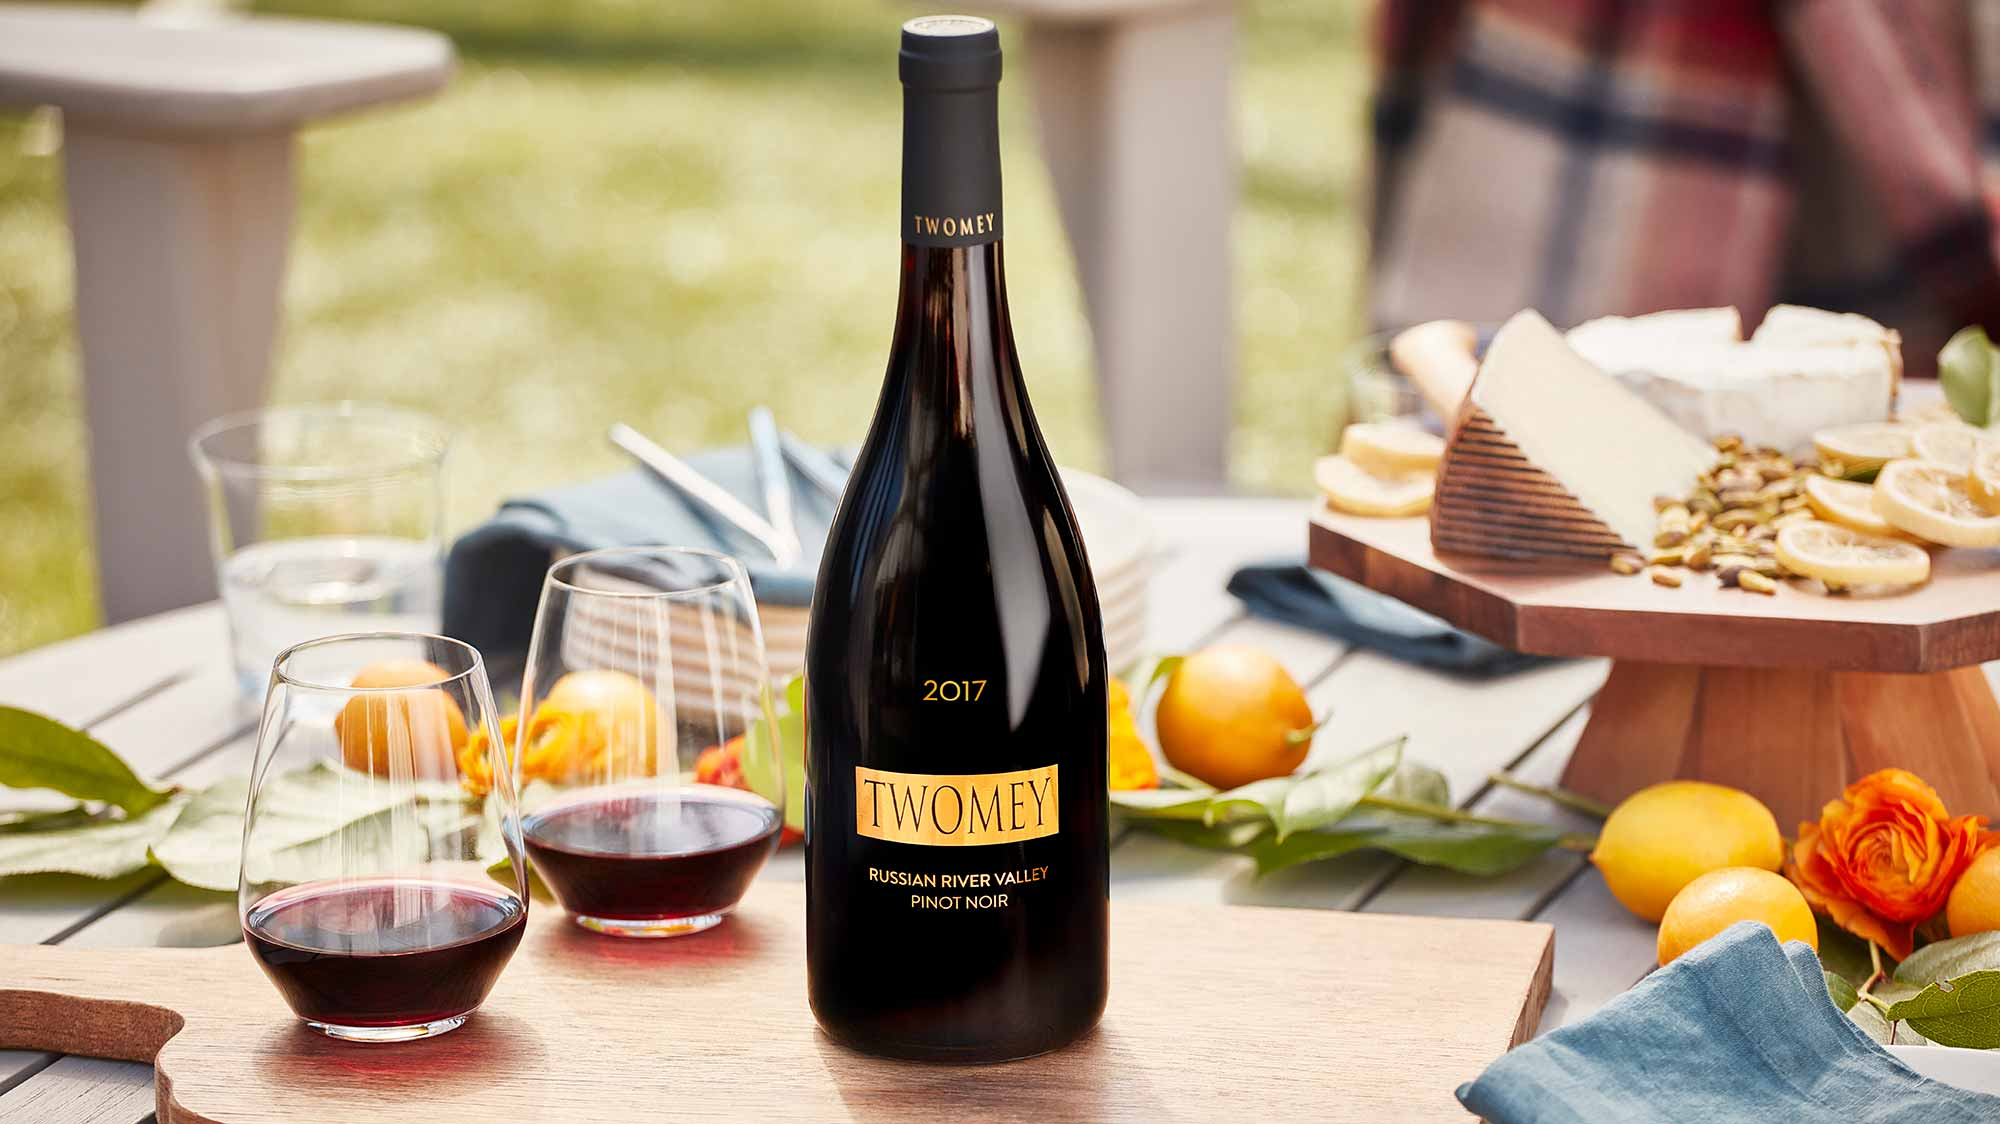 Twomey 2017 Russian River Valley Pinot Noir